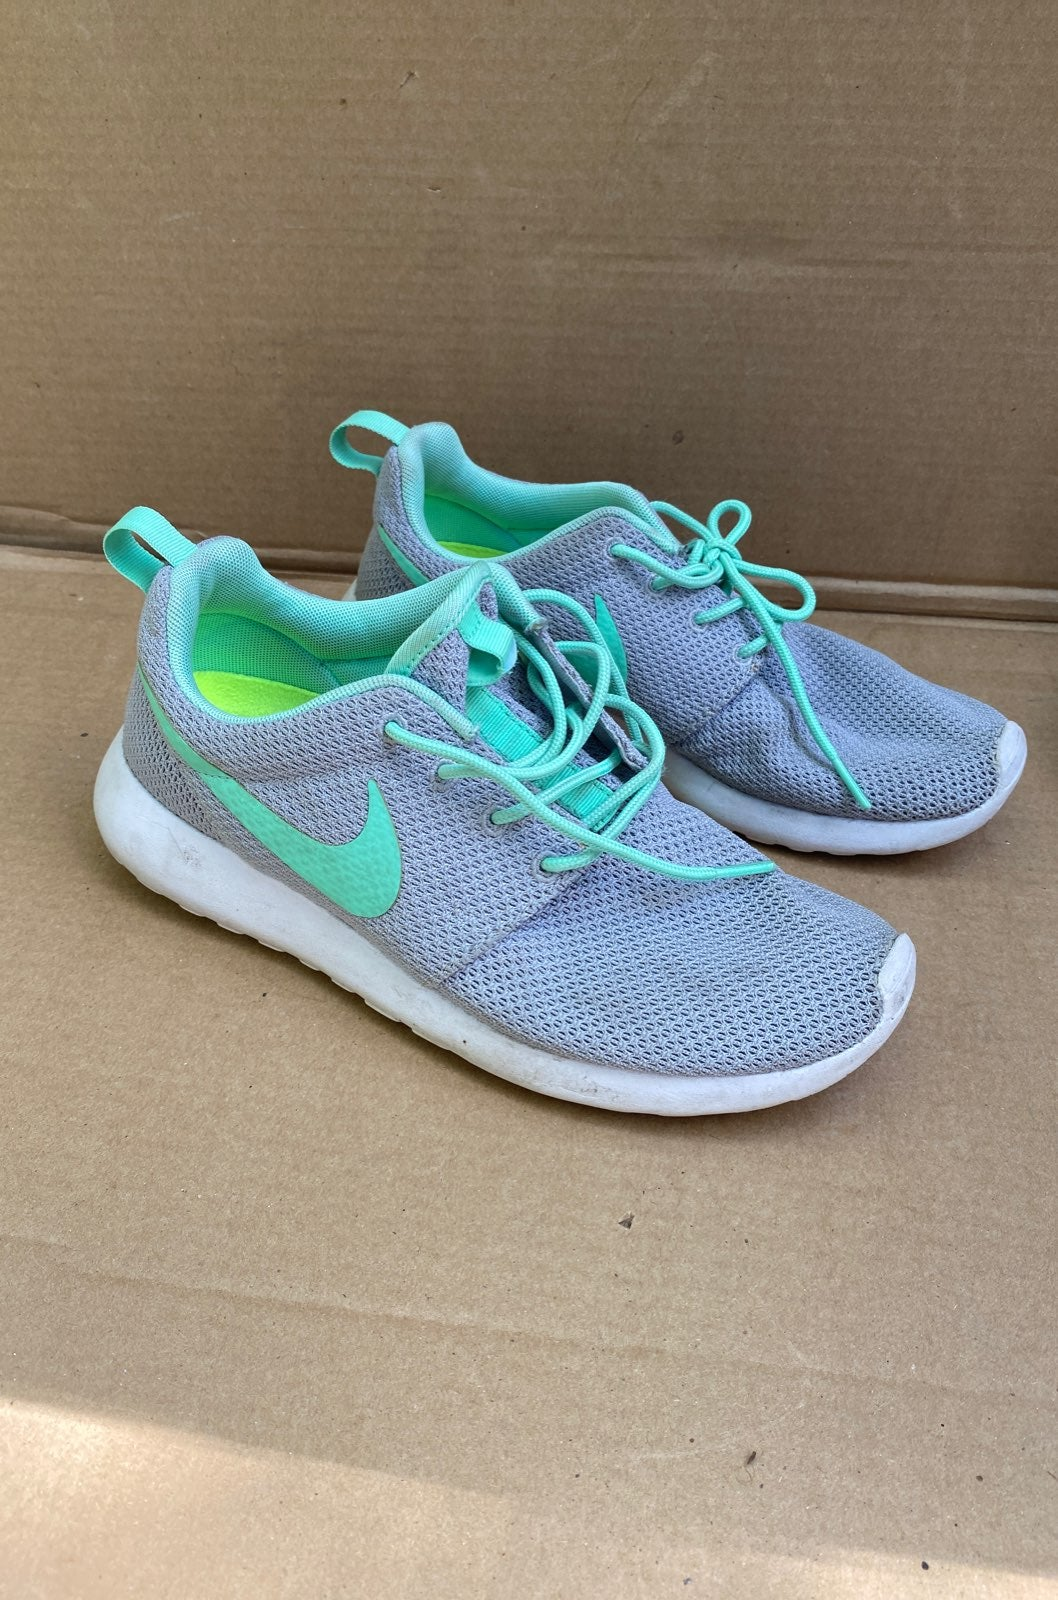 Nike Roshe Run Athletic Sneaker Shoe